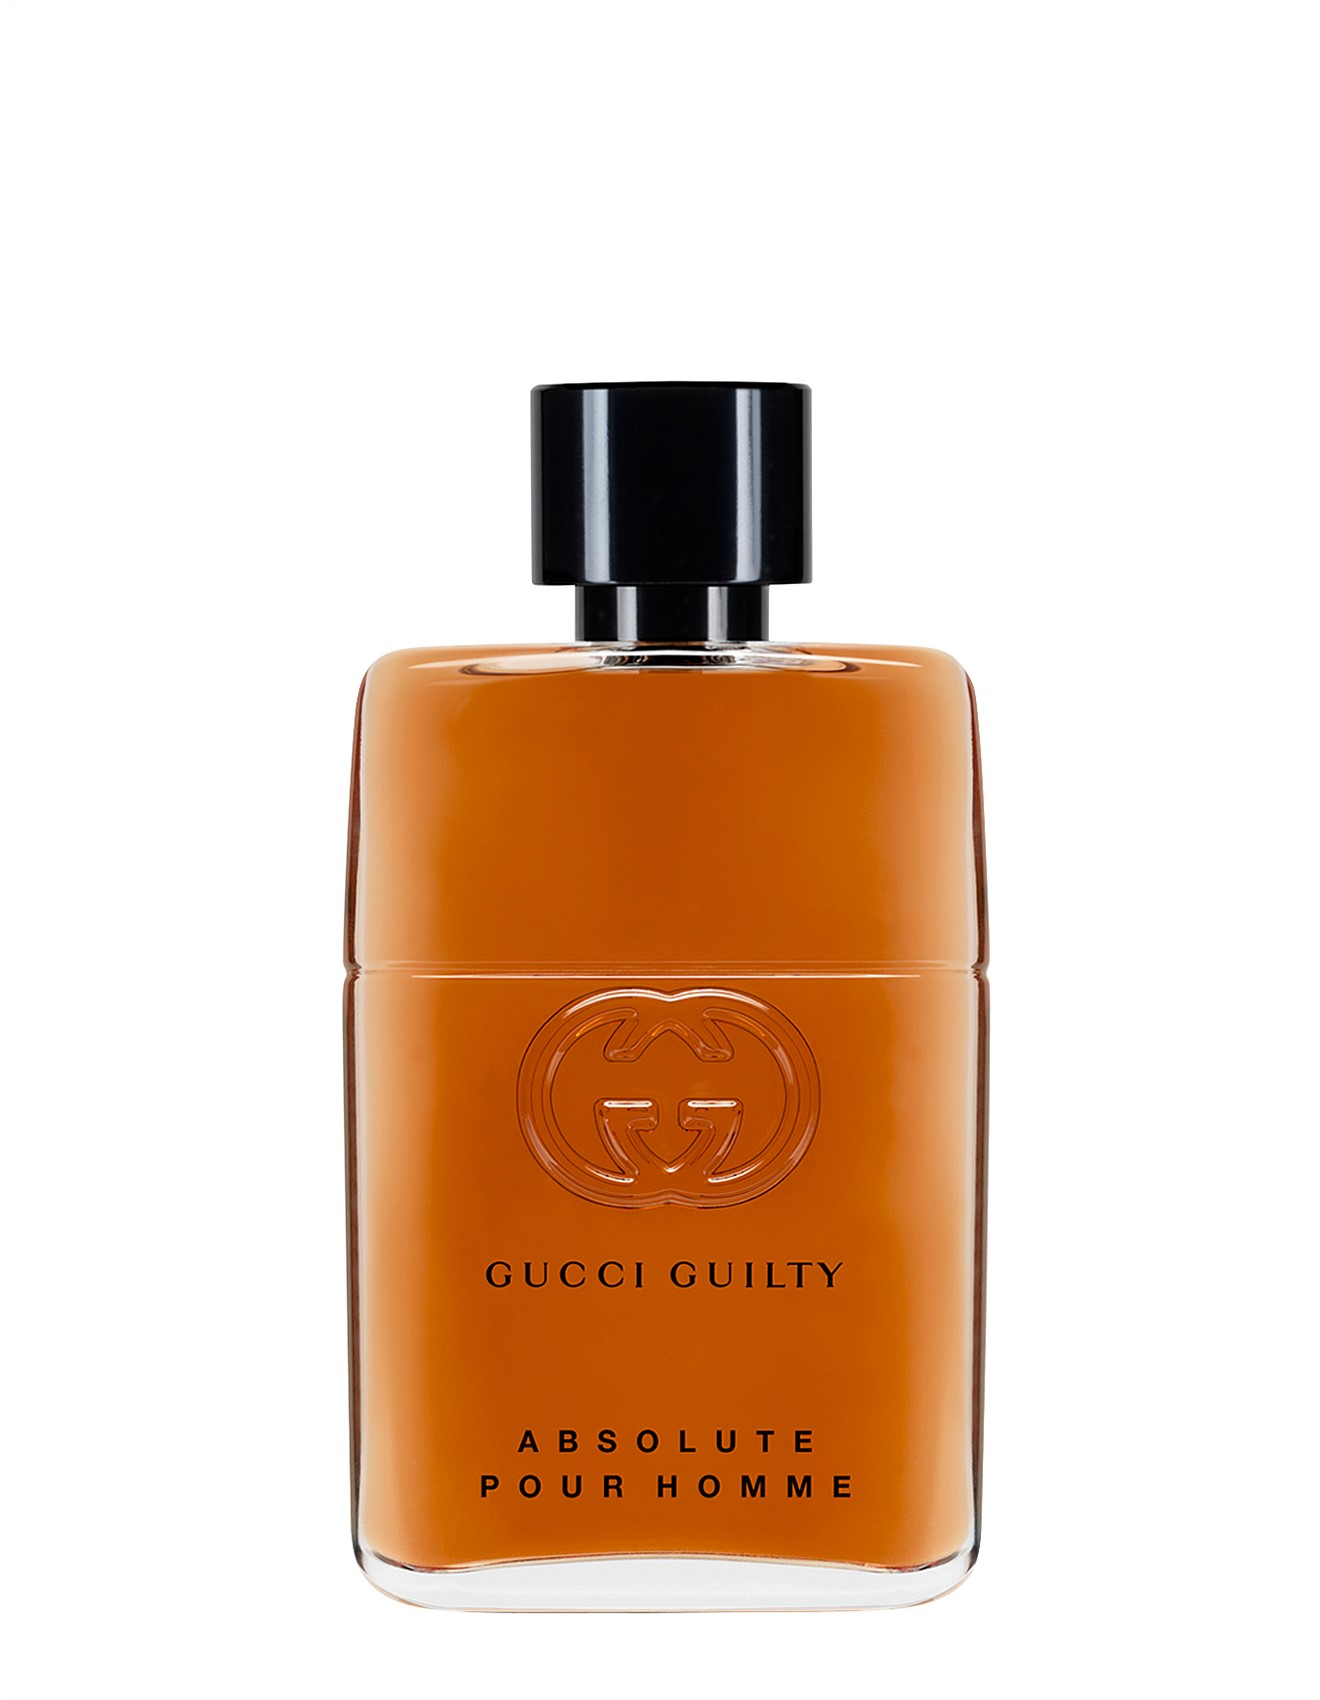 17998e4ae Gucci | Gucci Watches, Sunglasses, Perfume & More | David Jones - Gucci  Guilty Pour Homme Absolute 50ml Edp